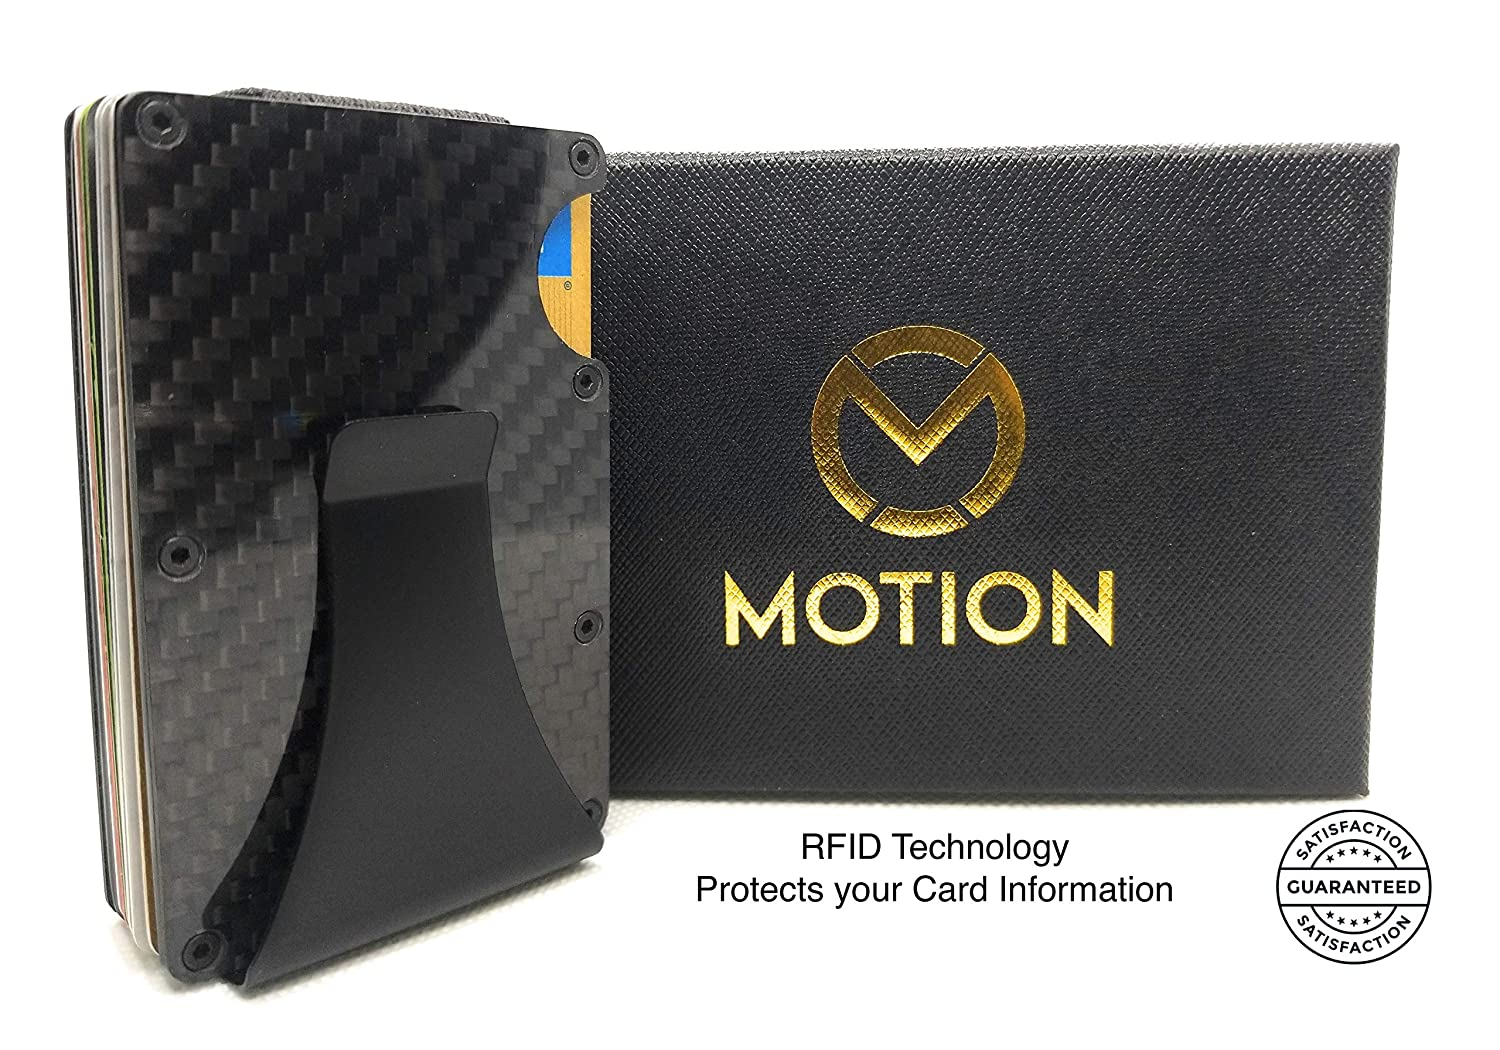 Carbon Fibre Men's Wallet RFID Blocking Money Clip Credit Card Holder by MOTION